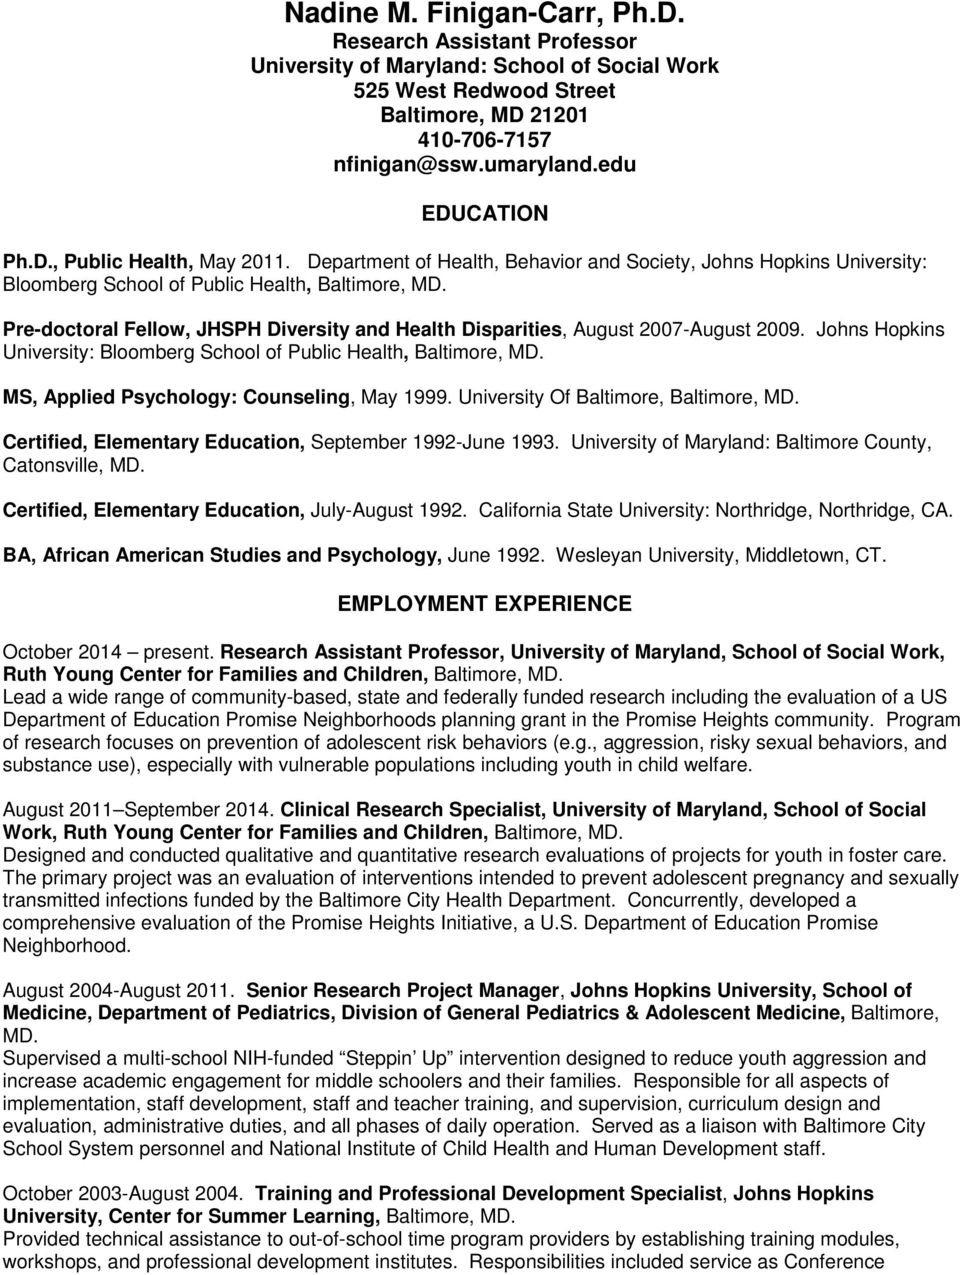 Pre-doctoral Fellow, JHSPH Diversity and Health Disparities, August 2007-August 2009. Johns Hopkins University: Bloomberg School of Public Health, Baltimore, MD.